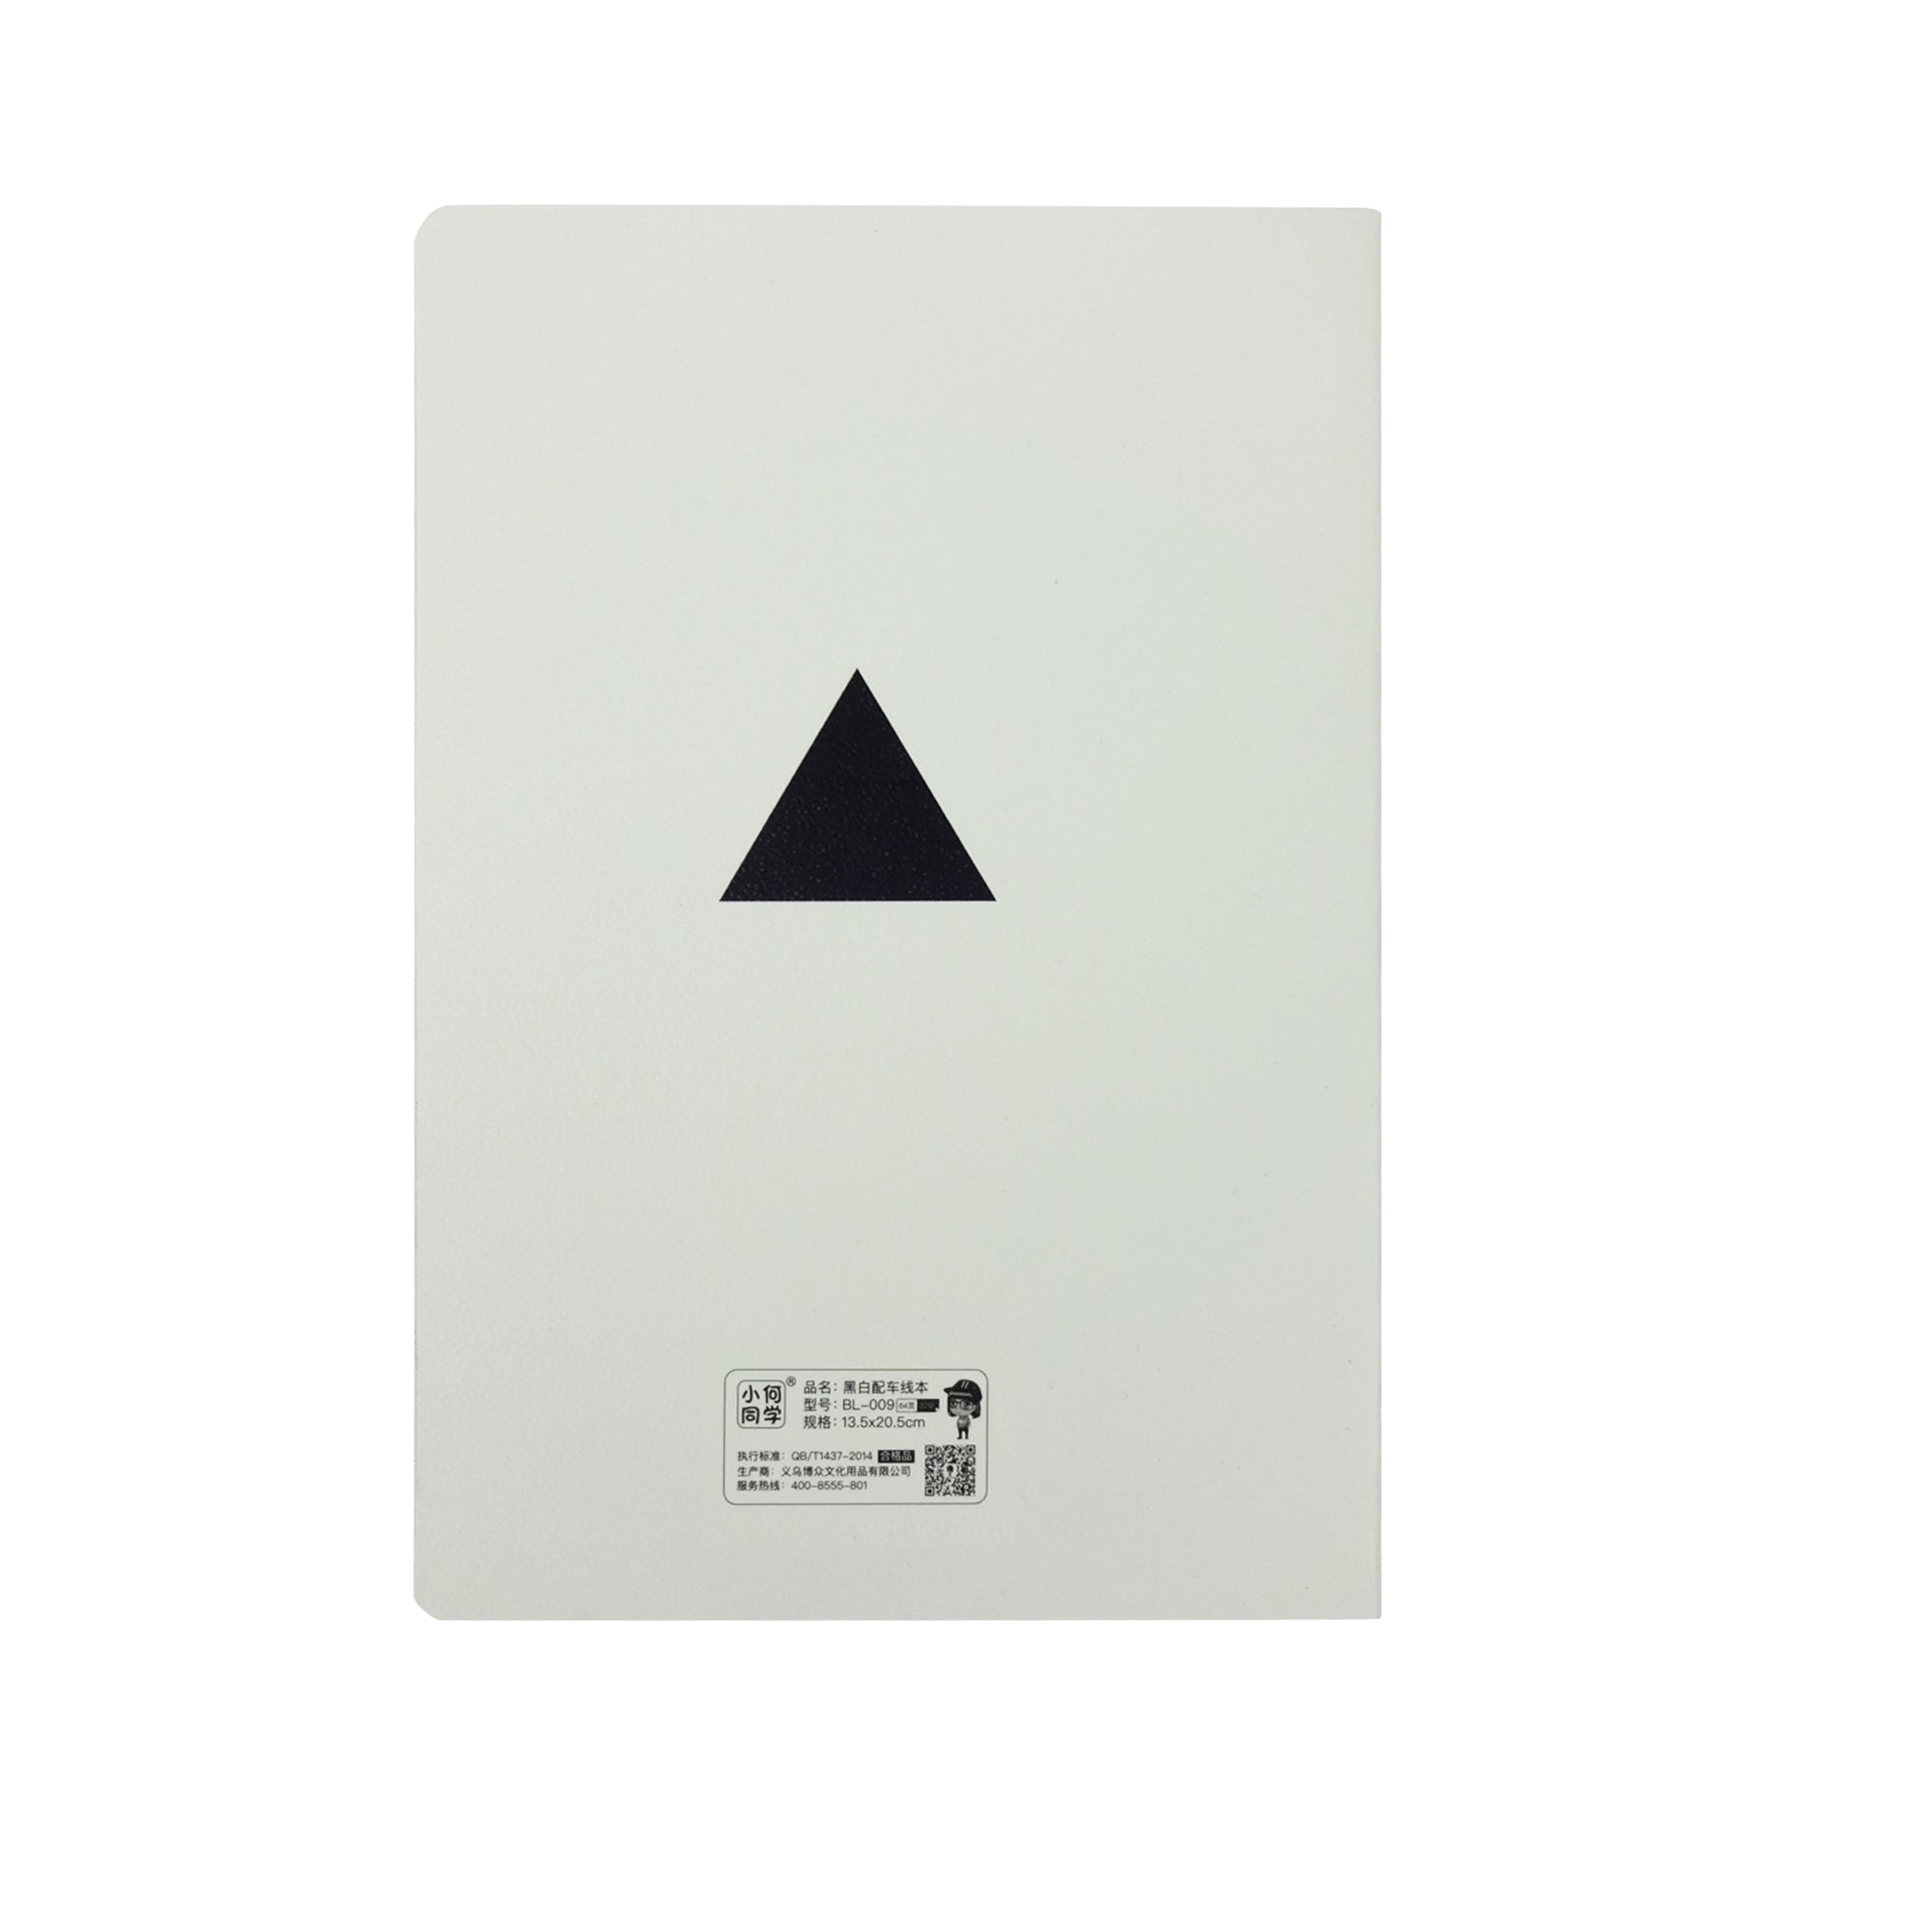 Black & White B5 Diary - Triangle